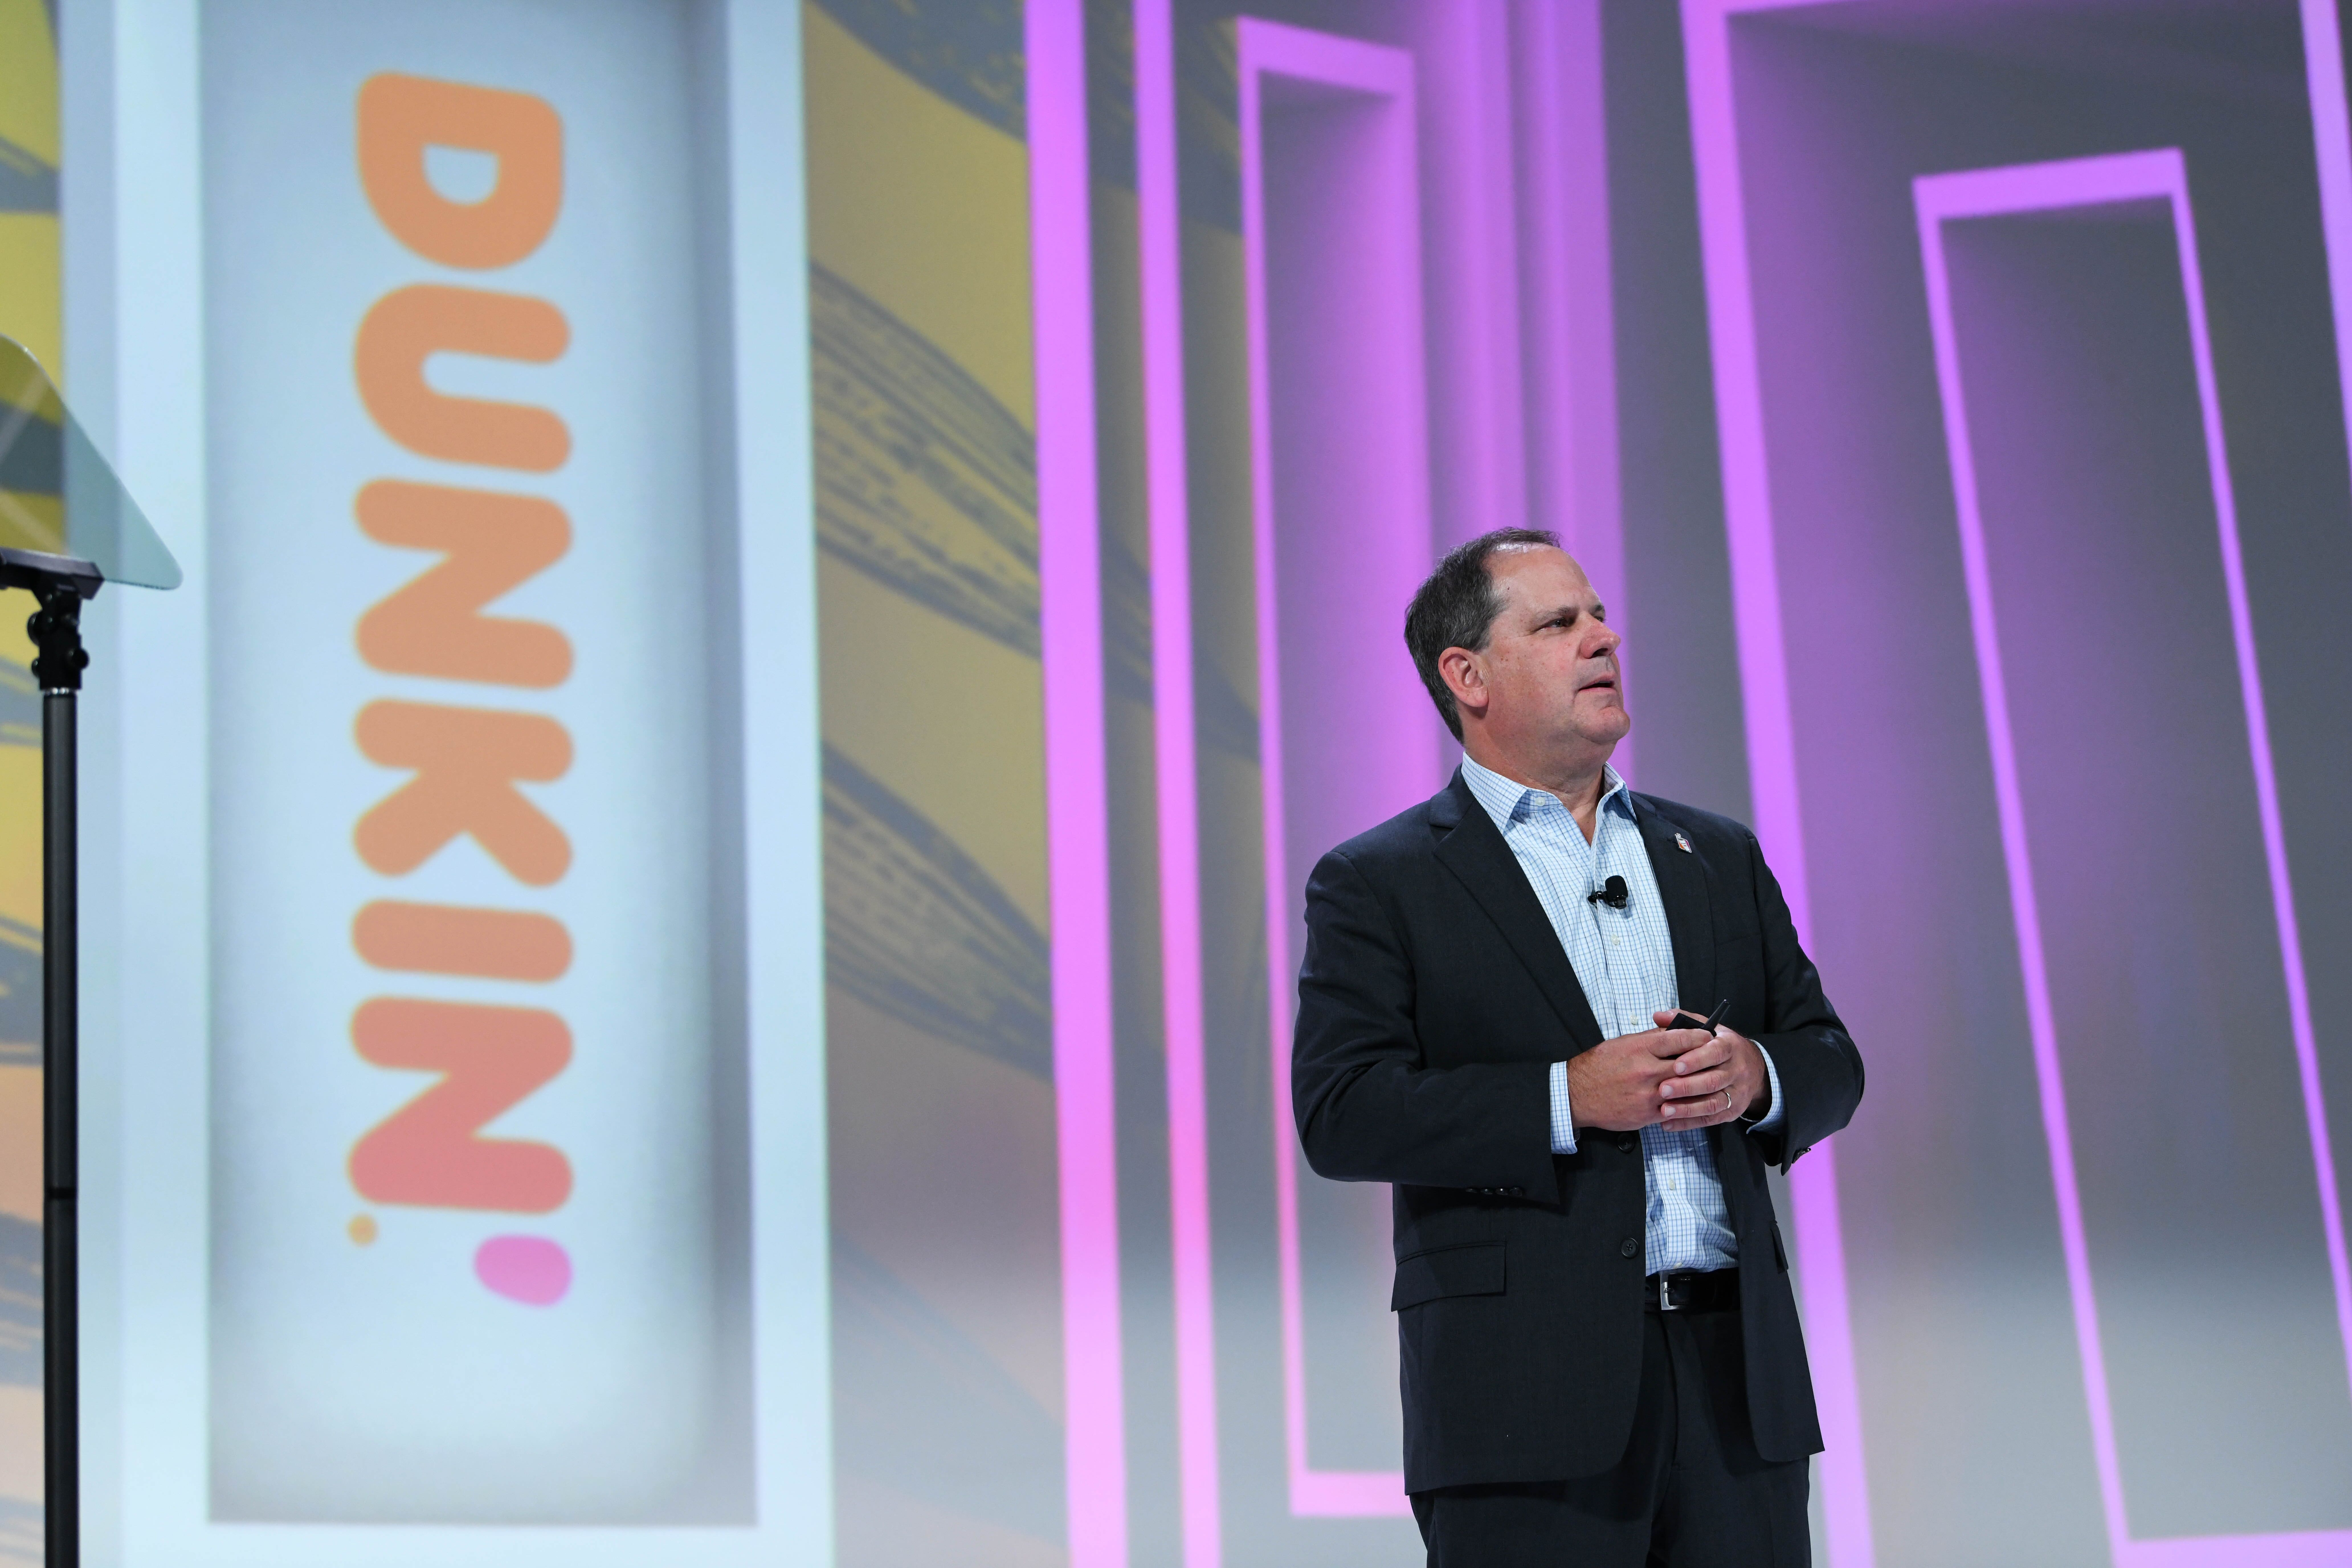 With rampant turnover among big company CMOs, marketers grapple with the changing role